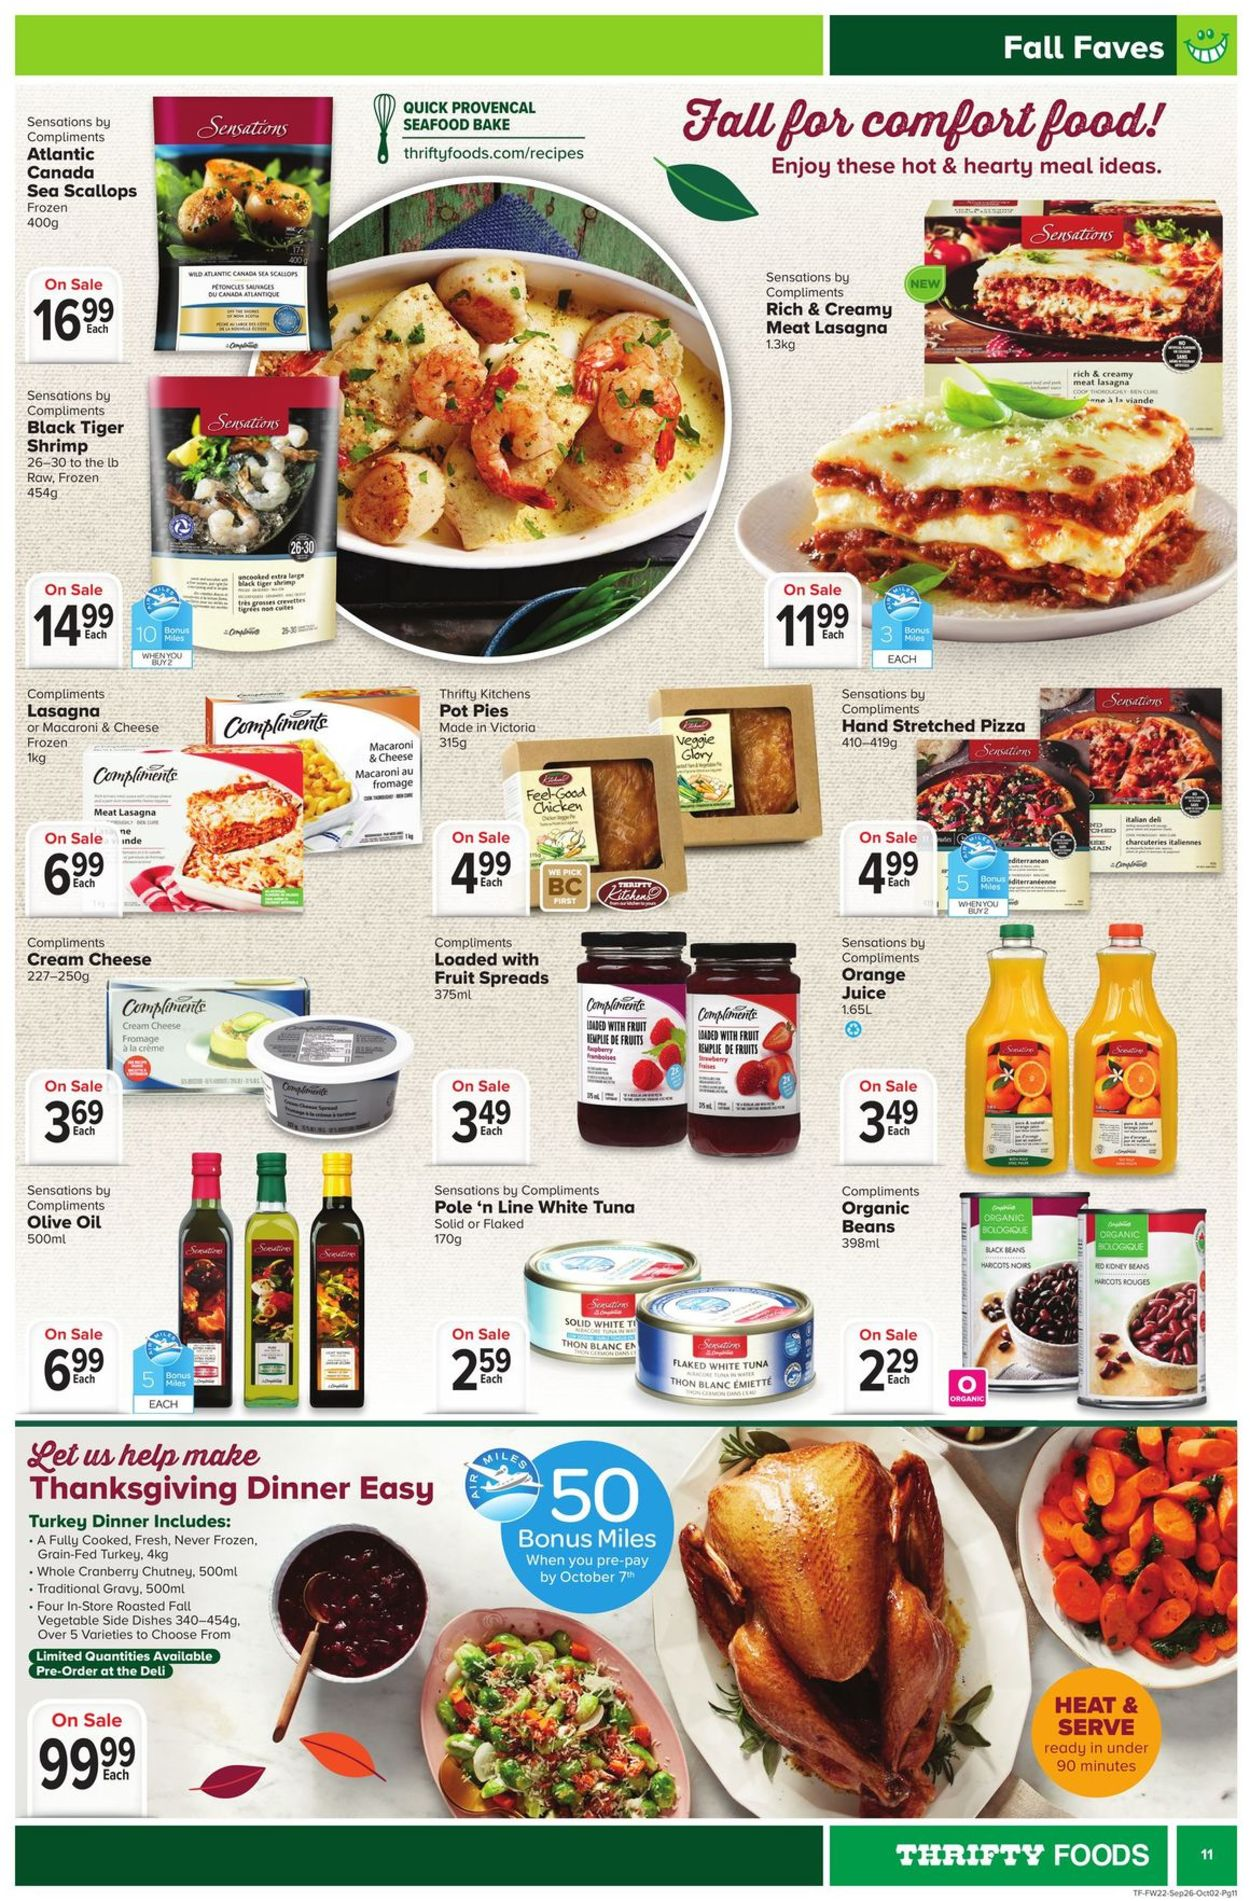 Thrifty Foods Flyer - 09/26-10/02/2019 (Page 11)